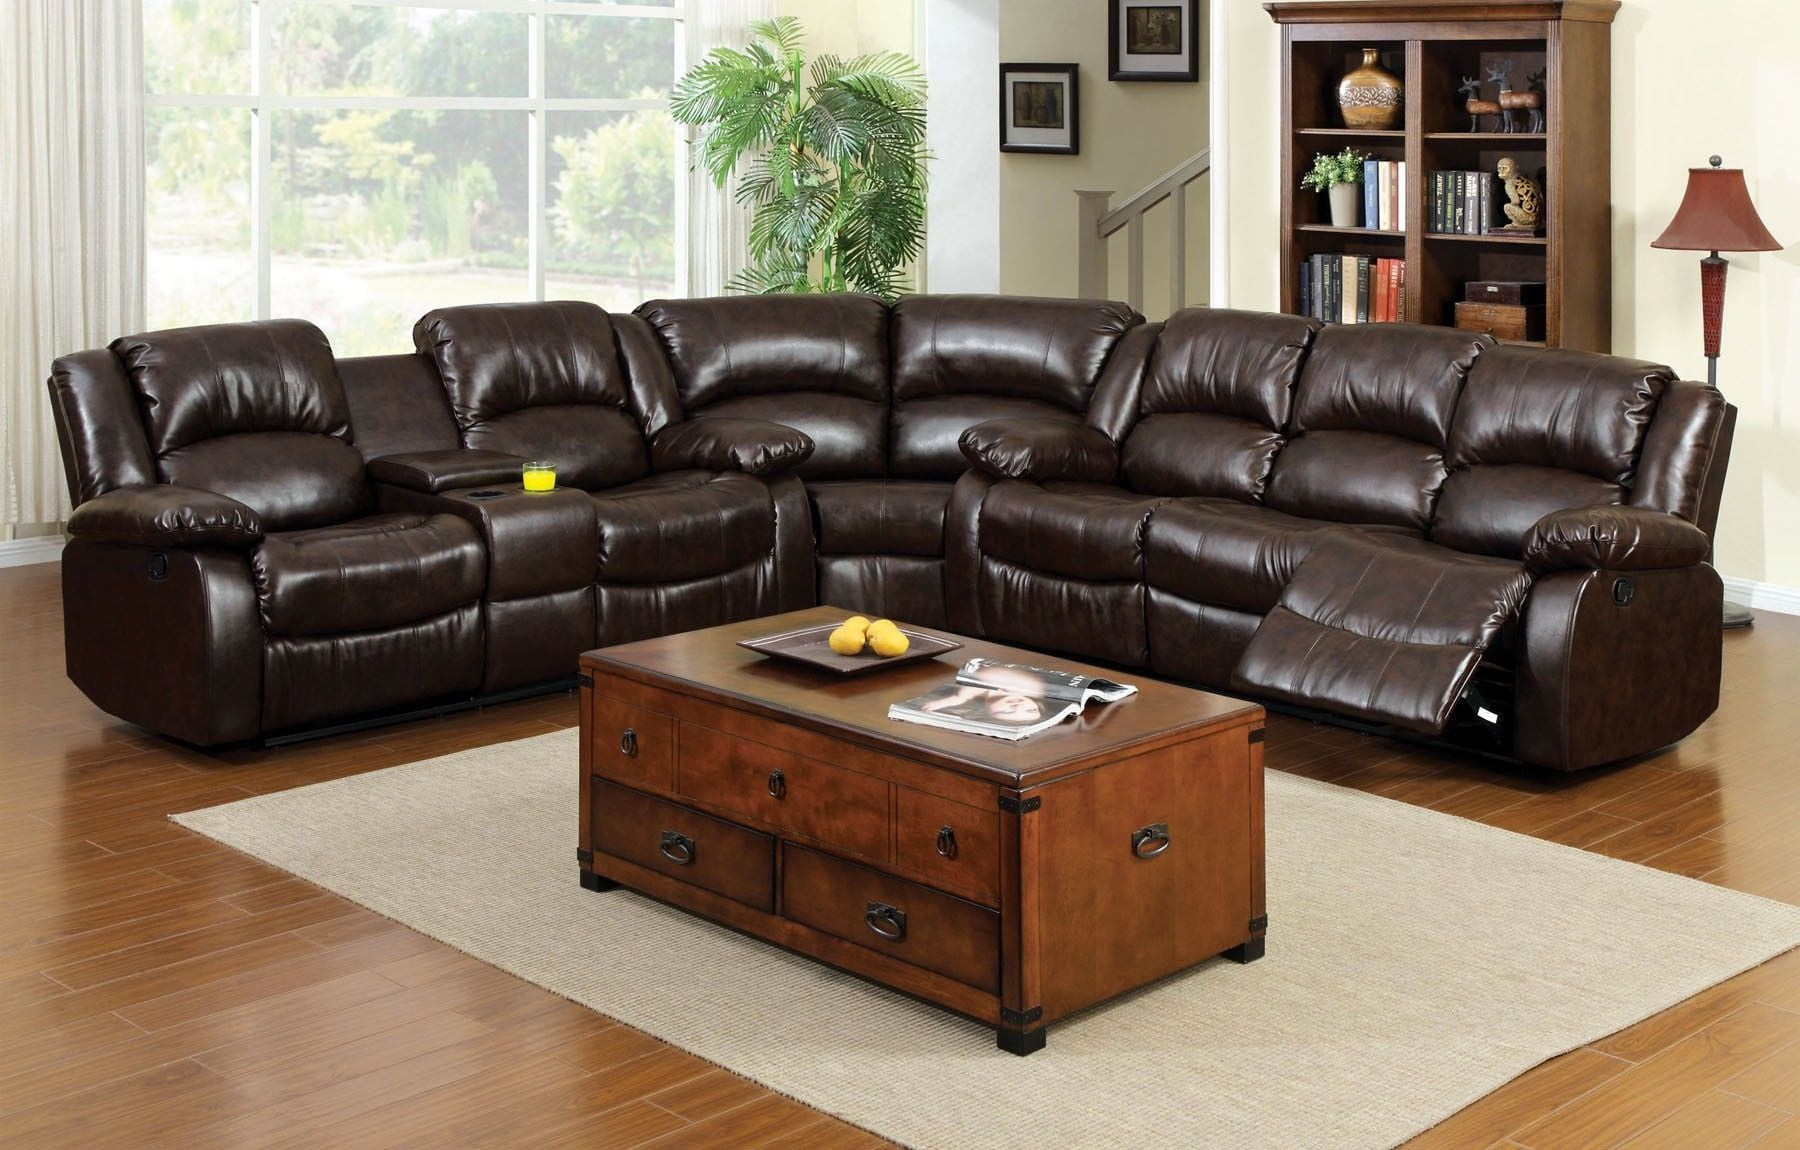 Reclining sectional without console 2960619